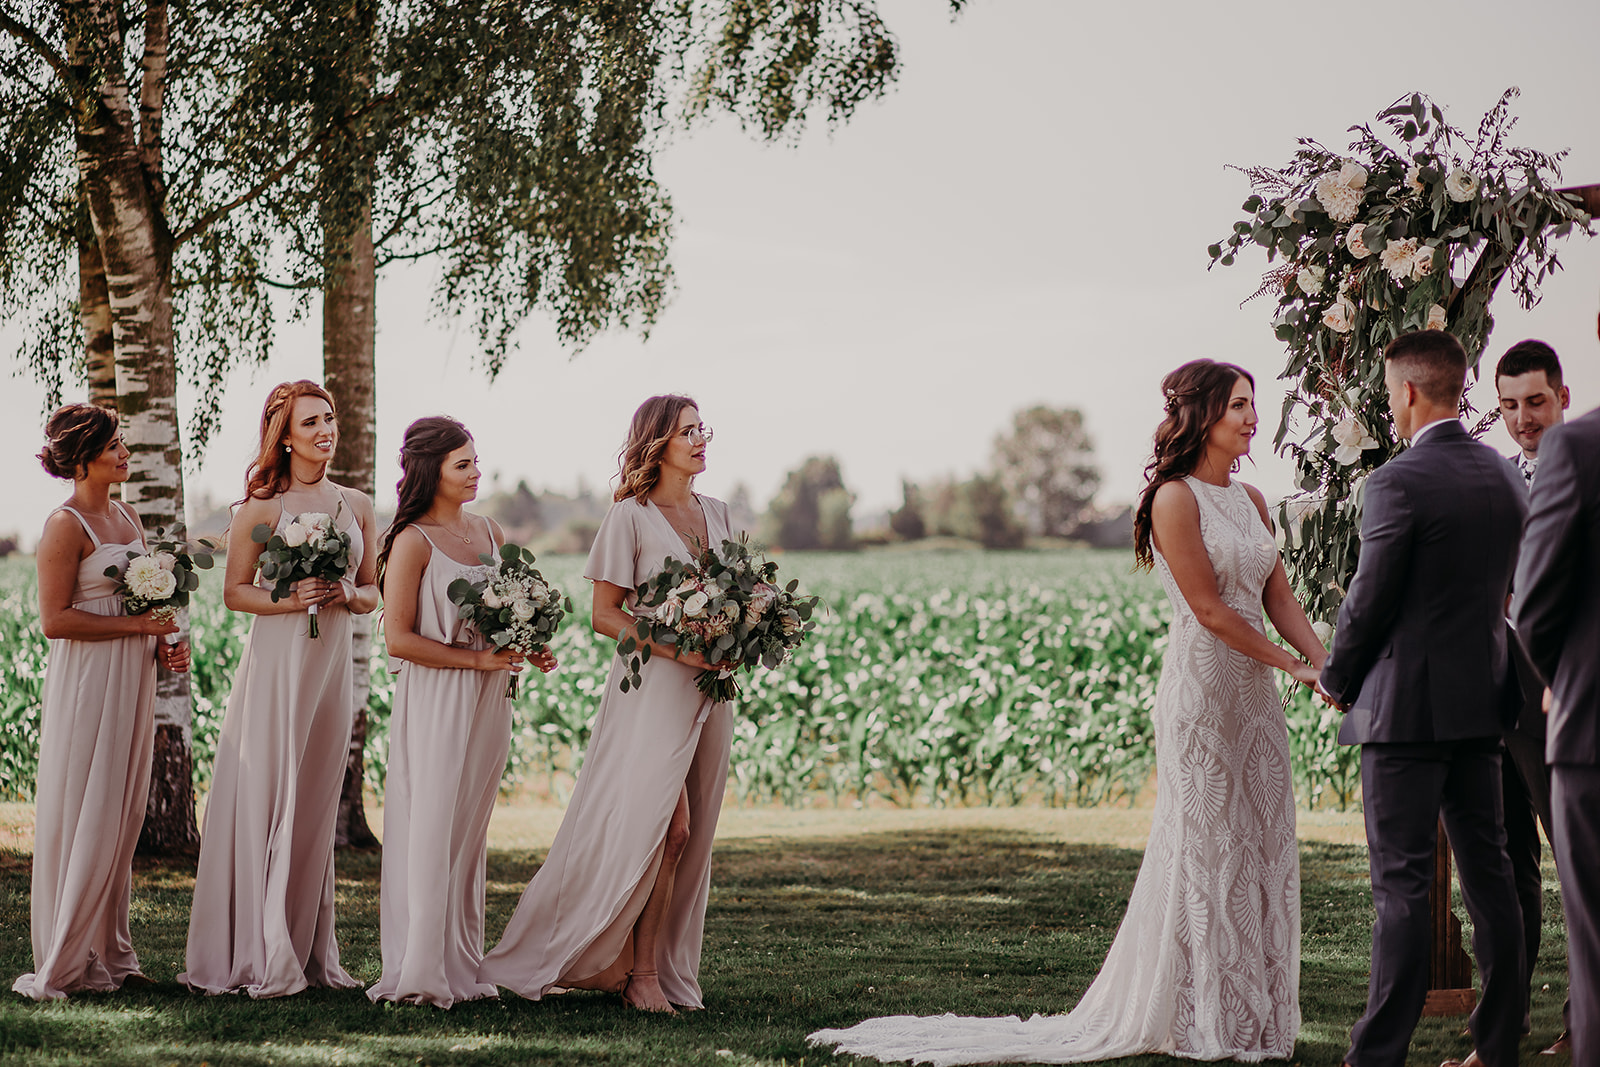 mount-vernon-wedding-salt-box-barn-amanda-riley-megan-gallagher-photography-1_(99_of_351).jpg